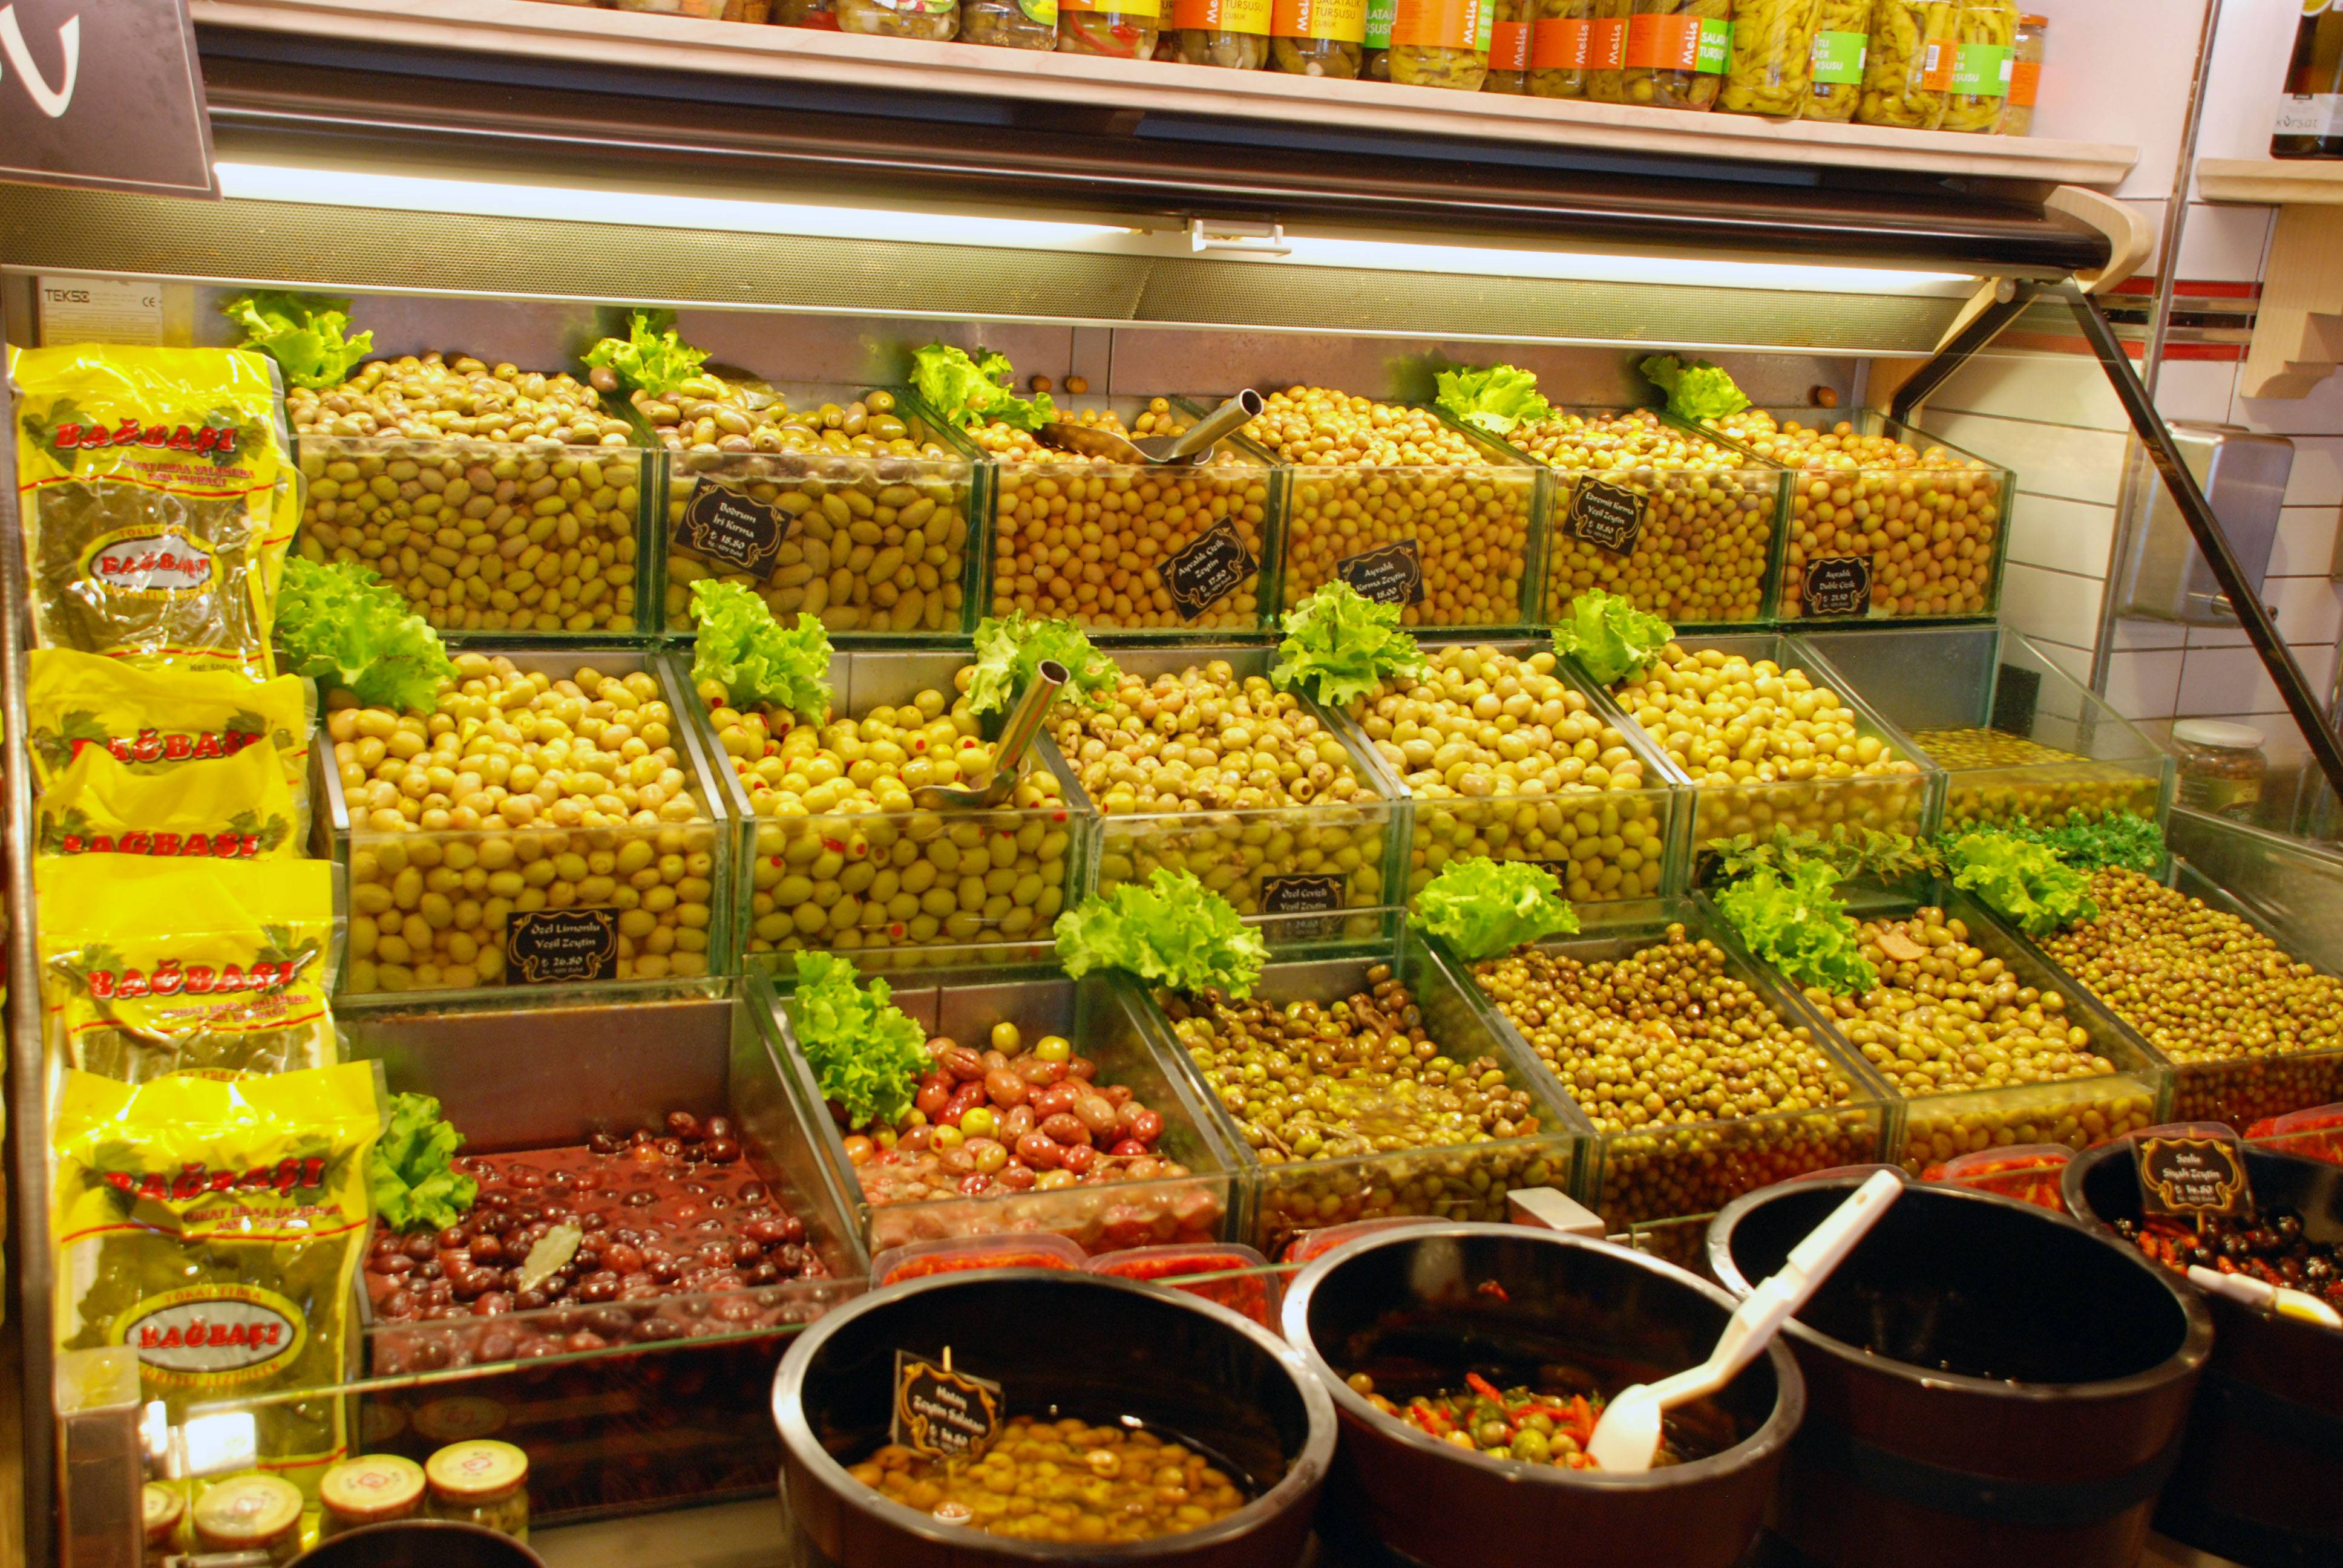 Visitors can choose from an array of olives in a shop in the neighborhood of Karakoy in Istanbul, Turkey.